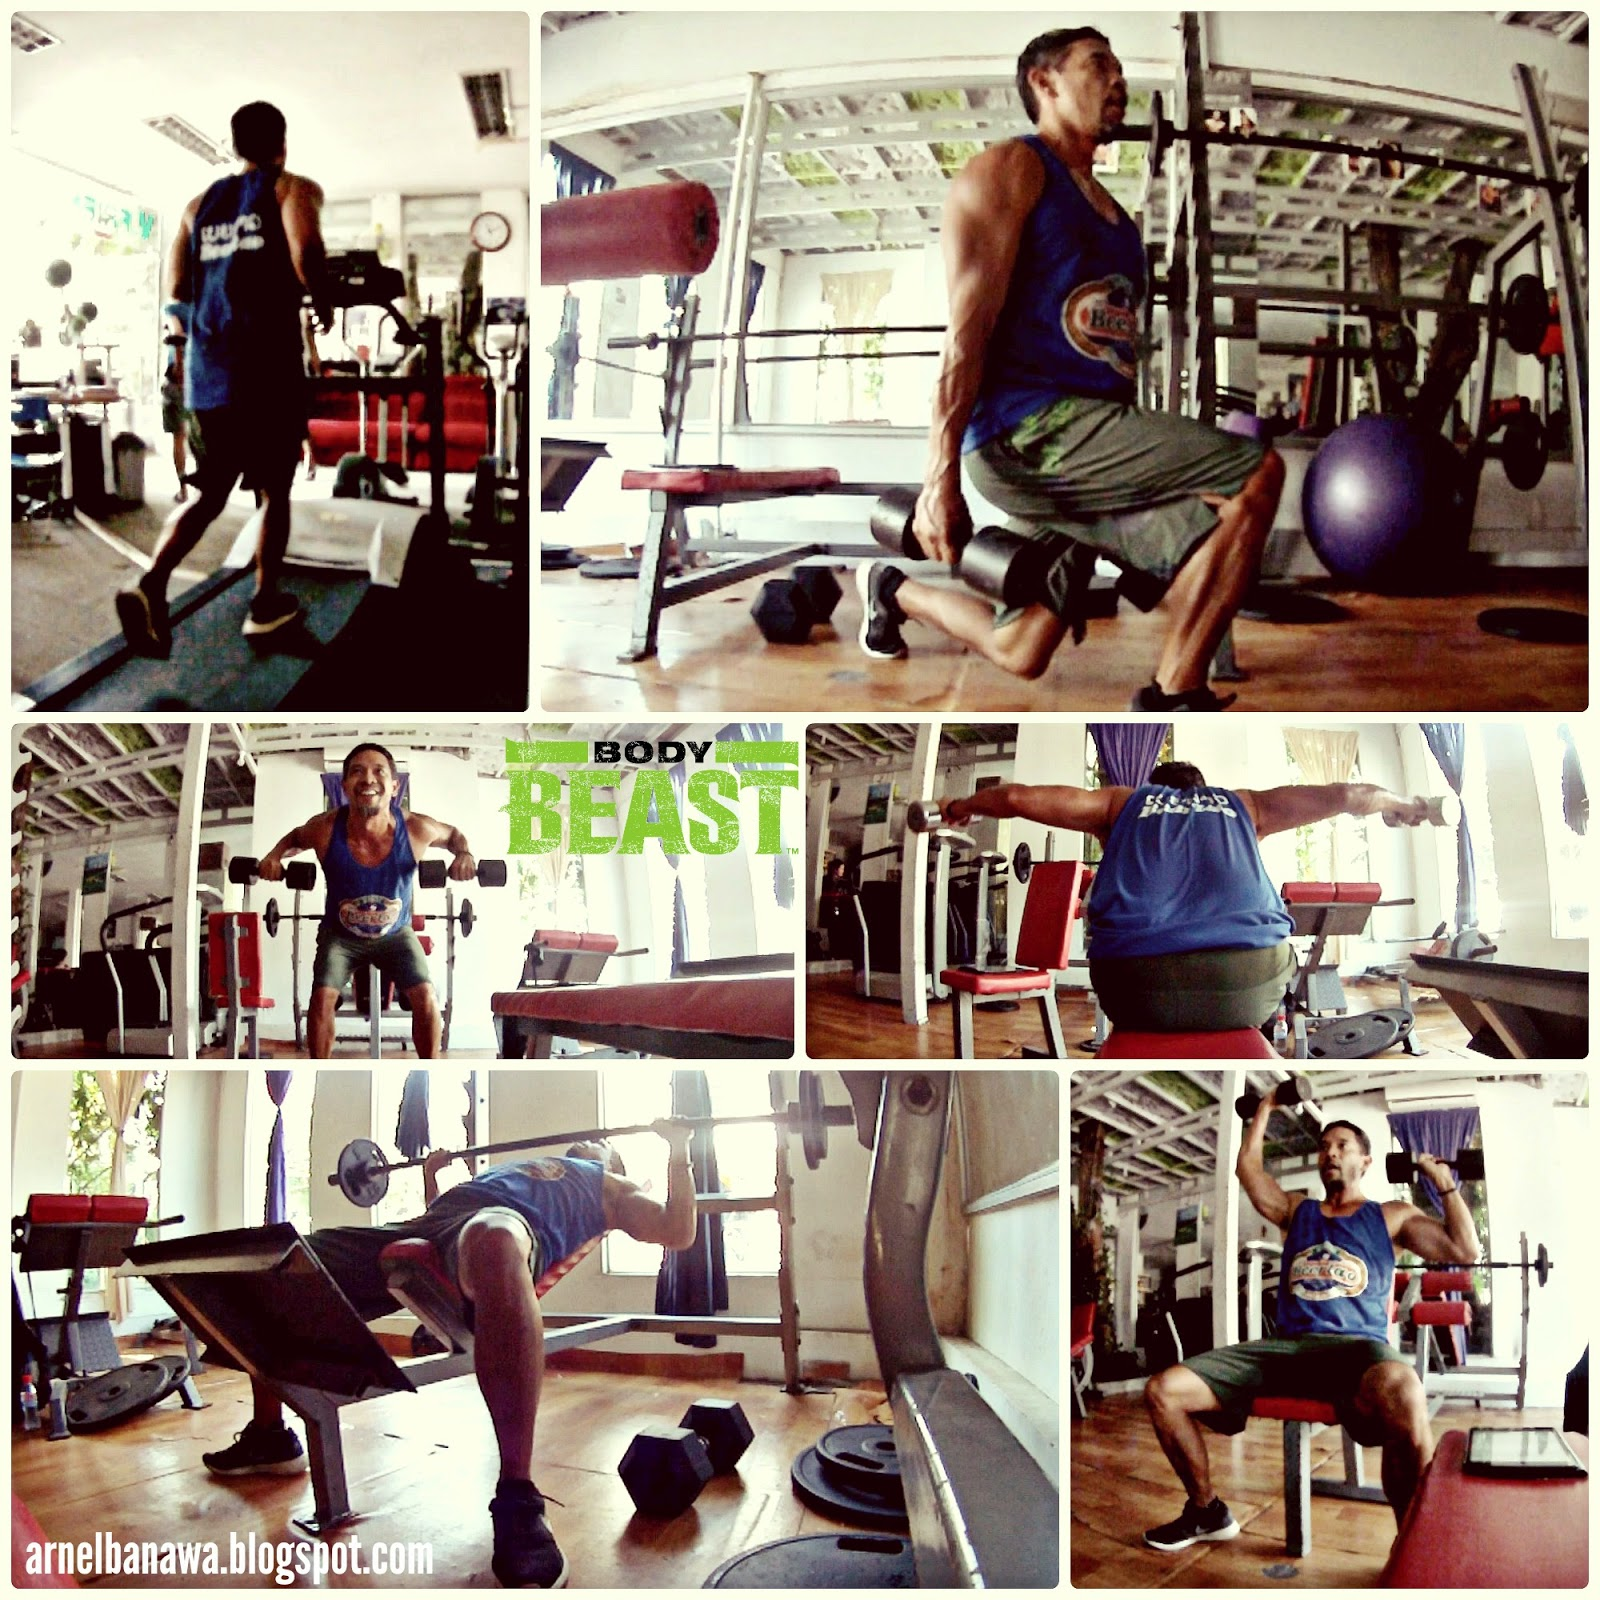 Gym in Phnom Penh, Cambodia - Body Beast Workout